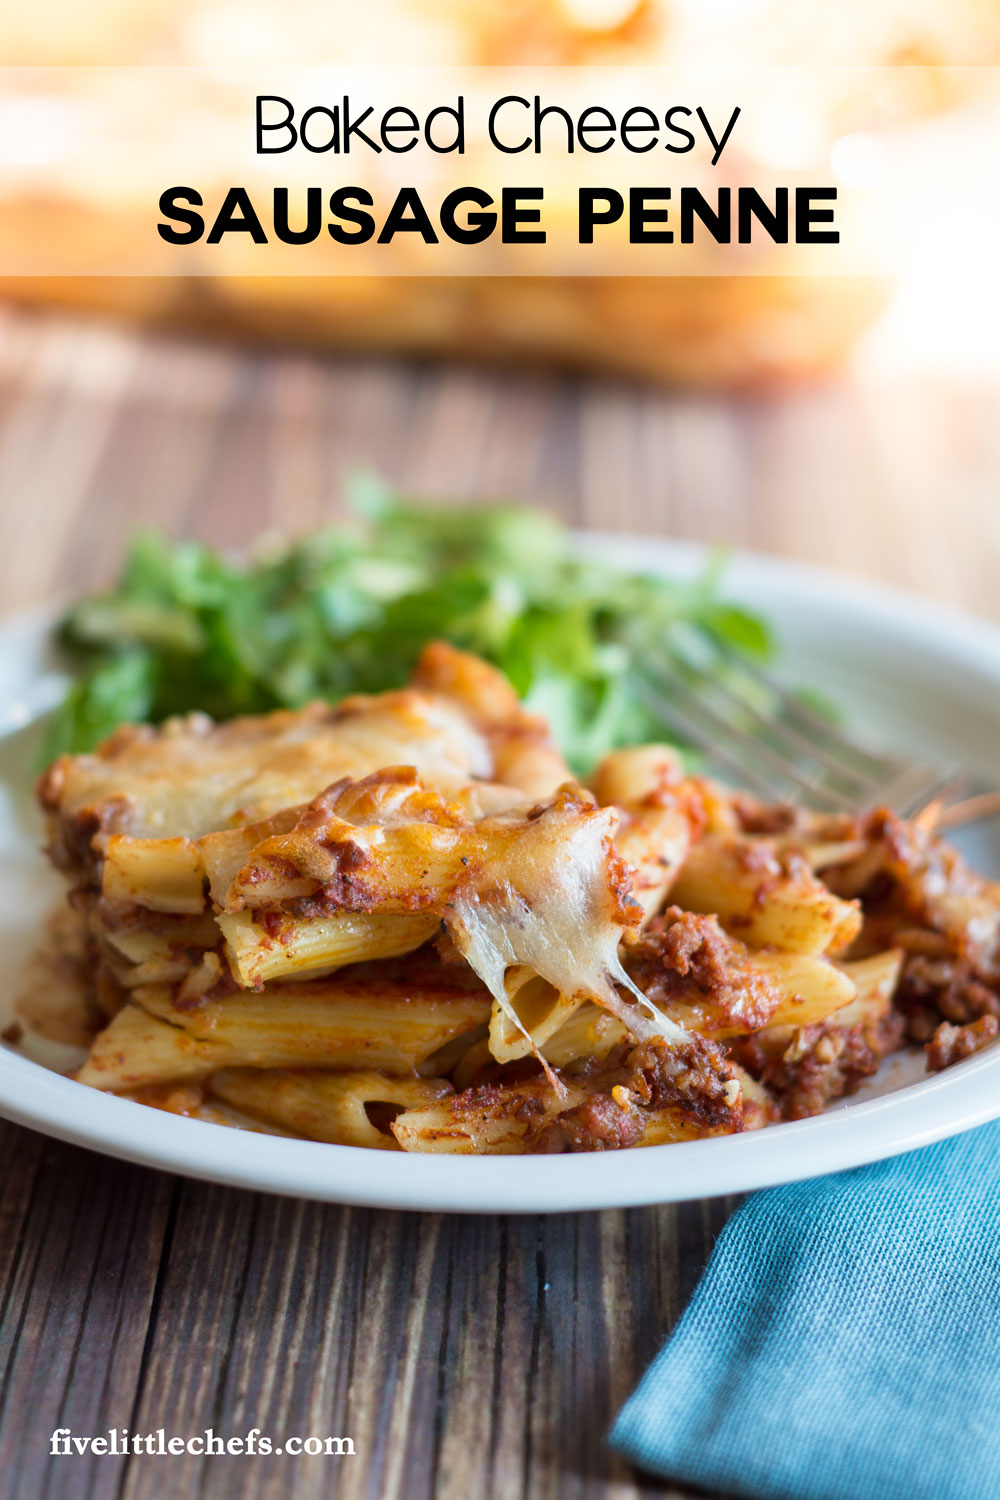 Baked Cheesy Sausage Penne is ultimate comfort foods. Use penne pasta, italian sausage and lots of mozzerella cheese to make it as cheesy as you want. Dinner is easy on the table within an hour, making for a great weeknight meal.